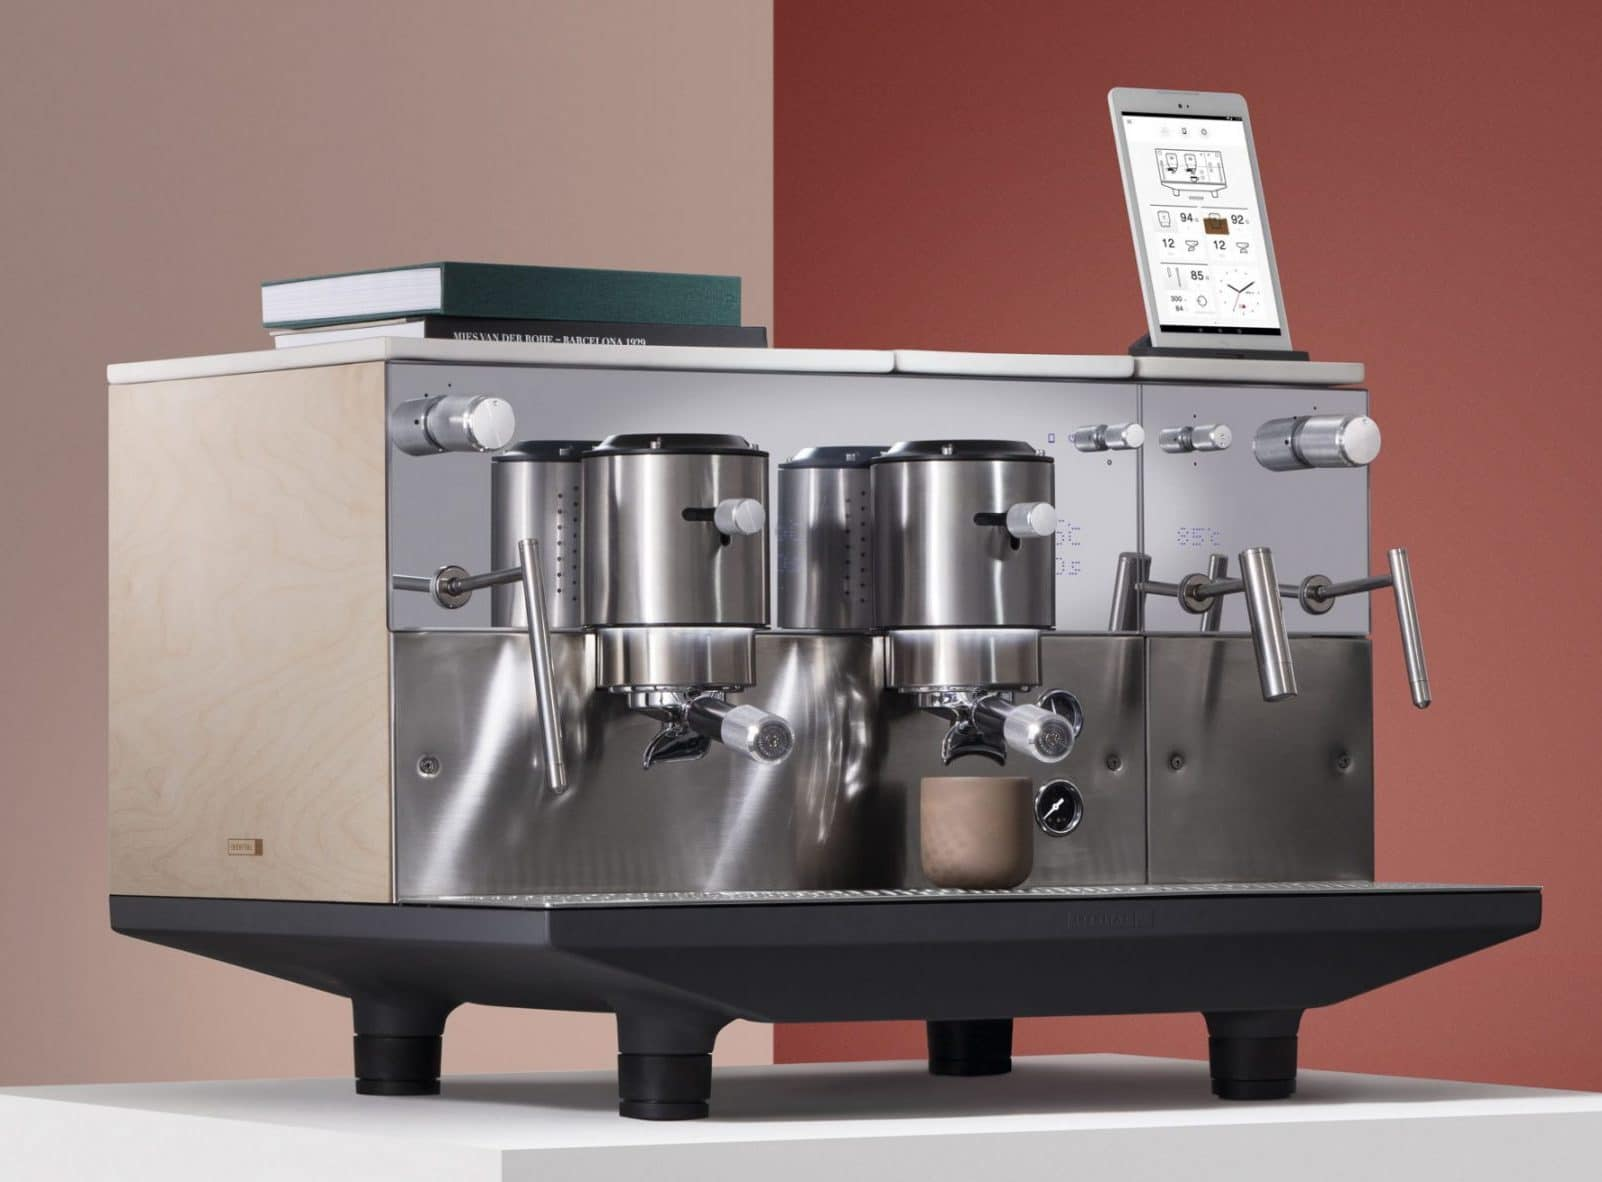 Iberital has achieved with the app created by app2U full real-time control of your espresso machine